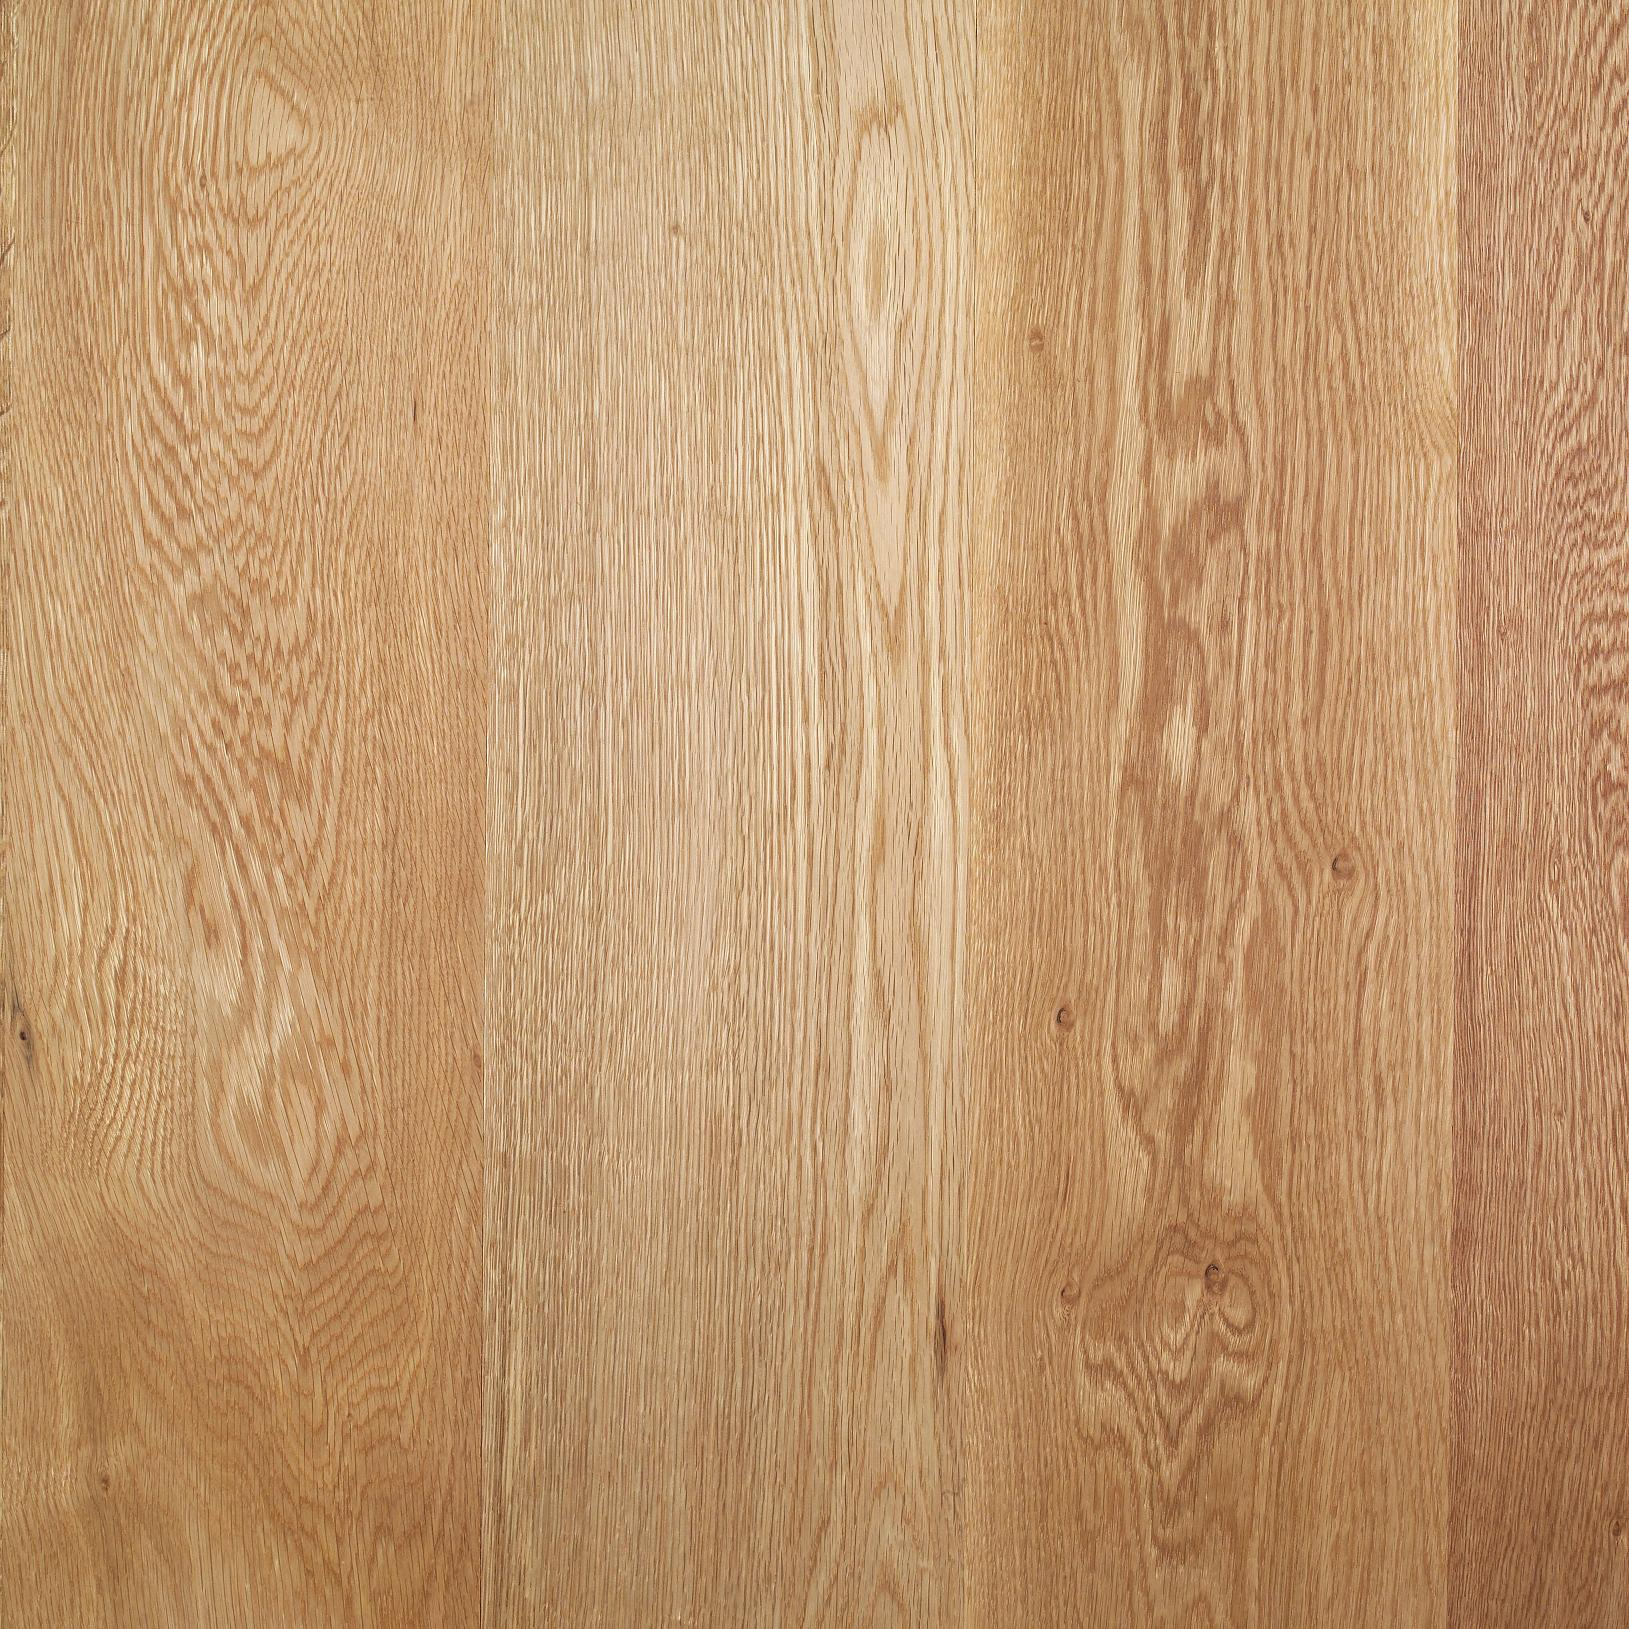 The 2012 knotty awards woodflooringtrends for Award flooring